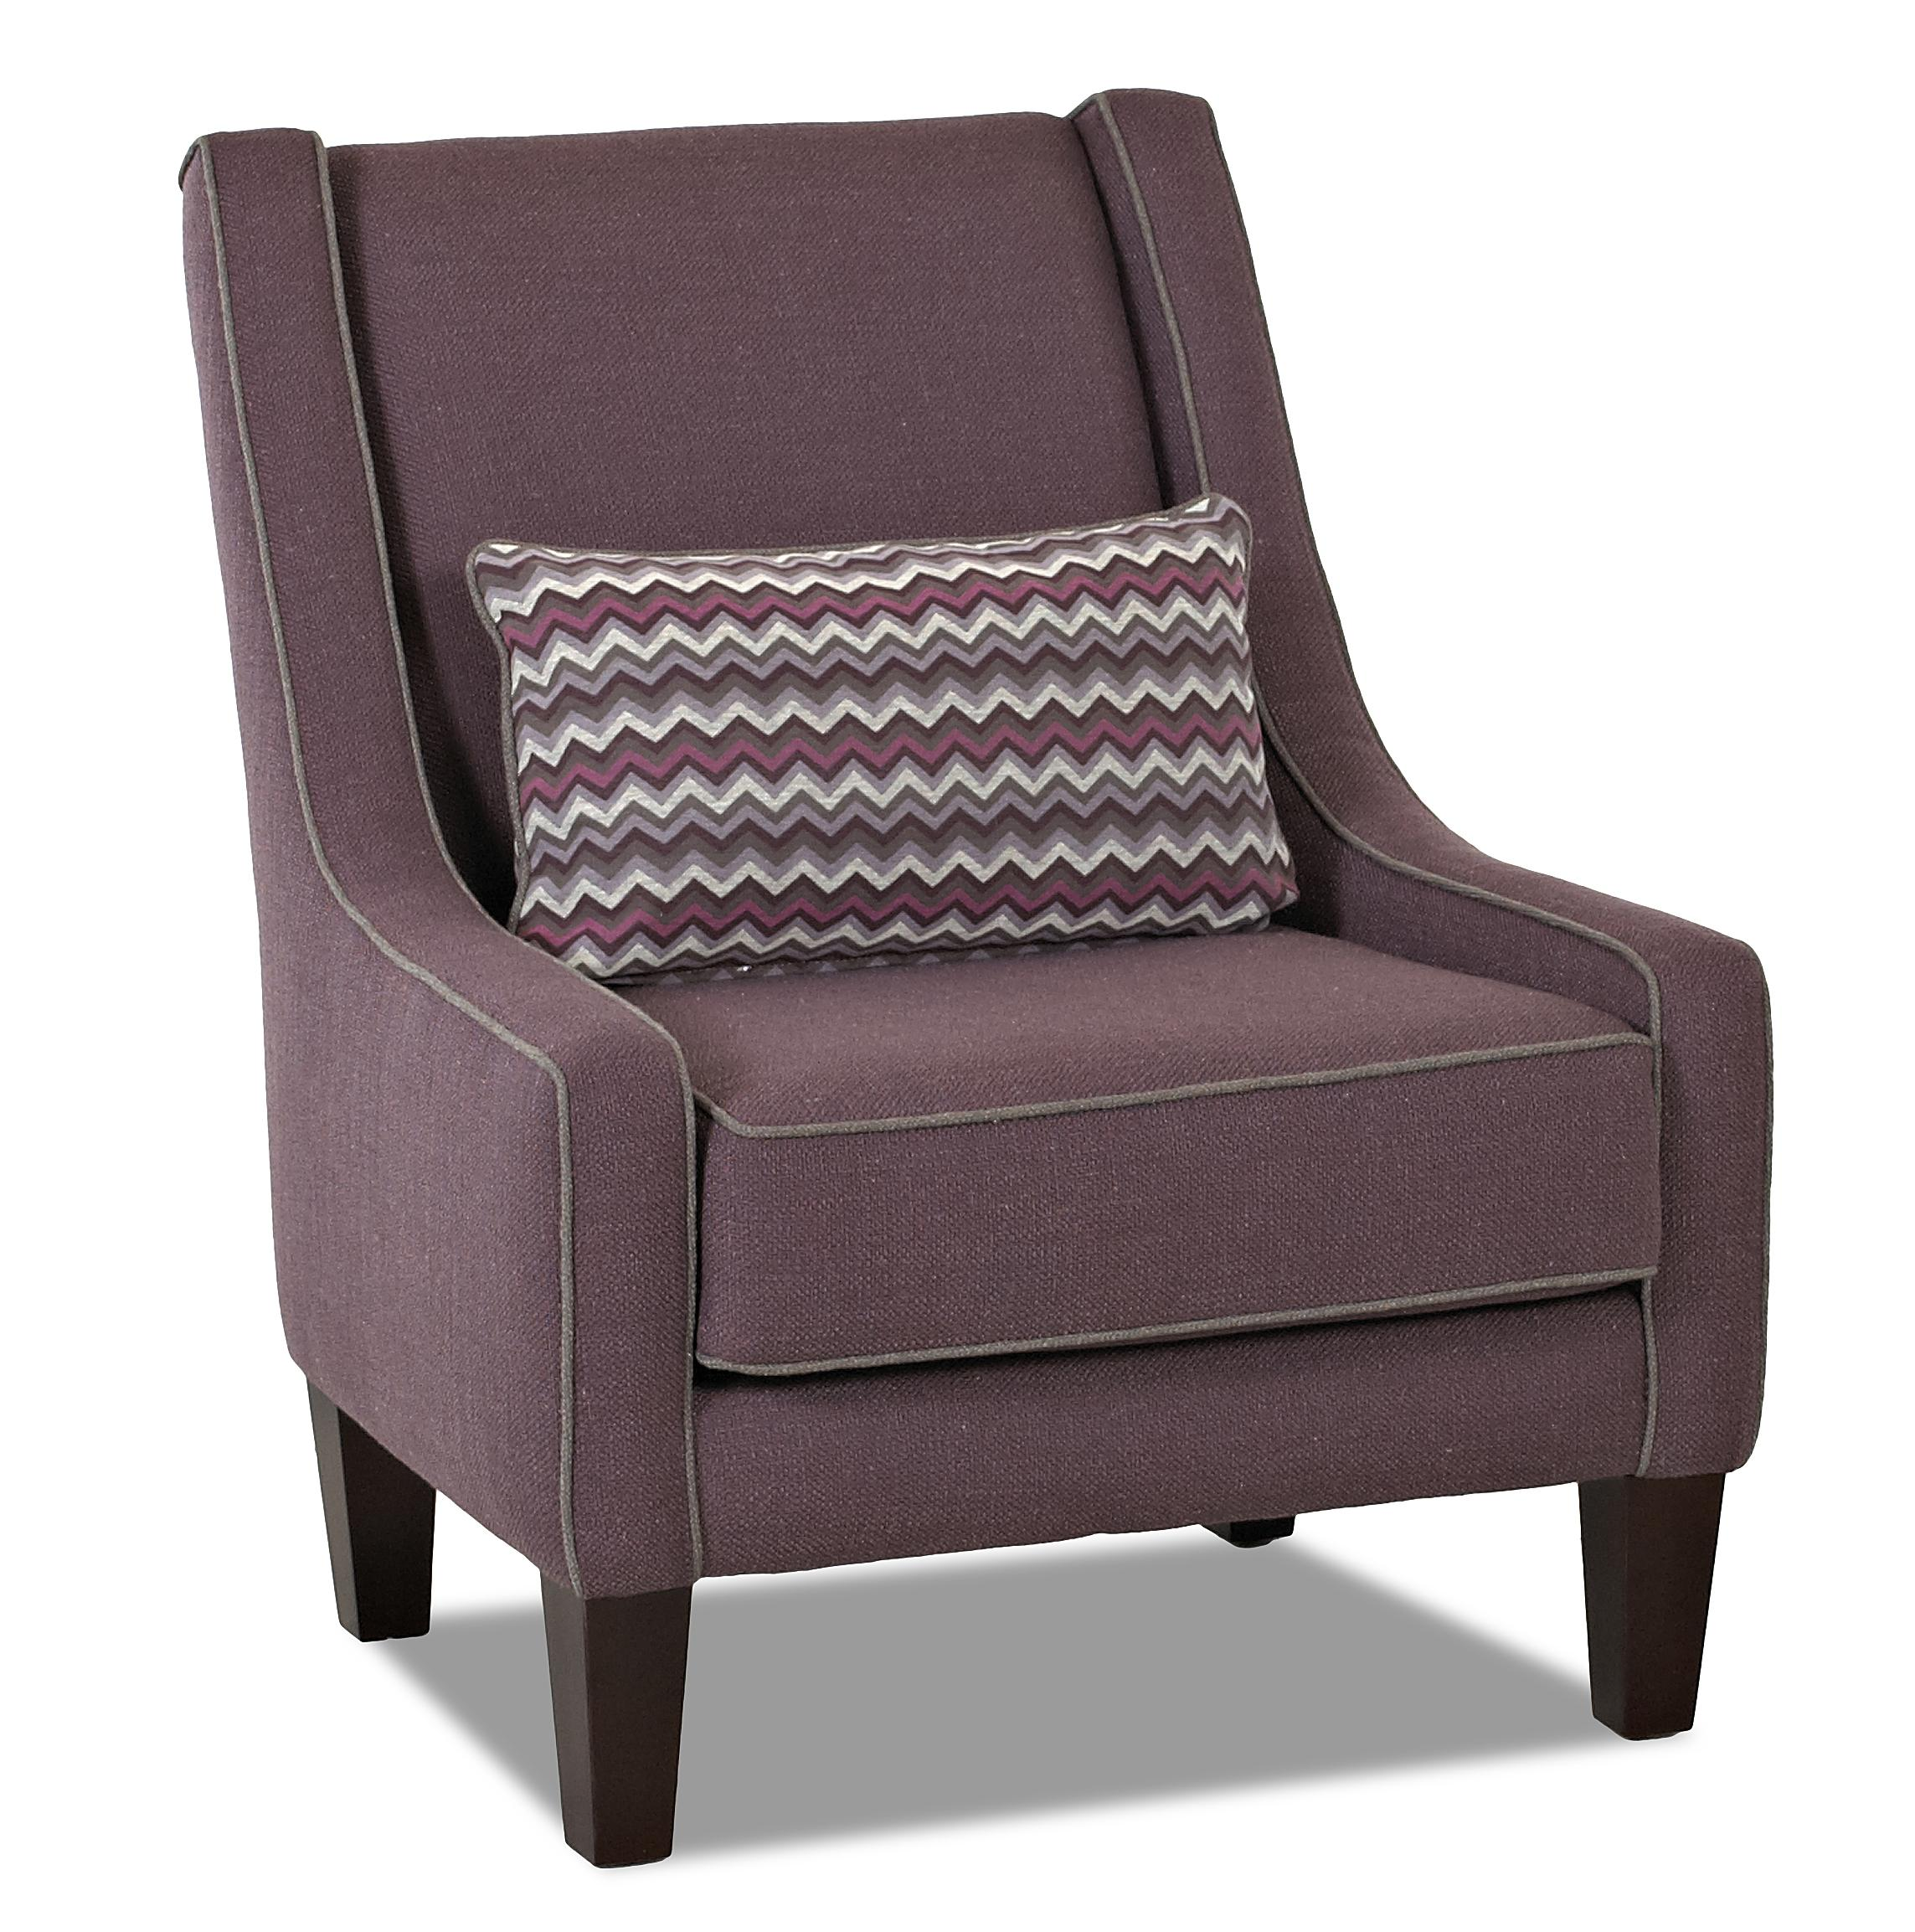 value city furniture accent chairs dining chair covers china klaussner and accents matrix with